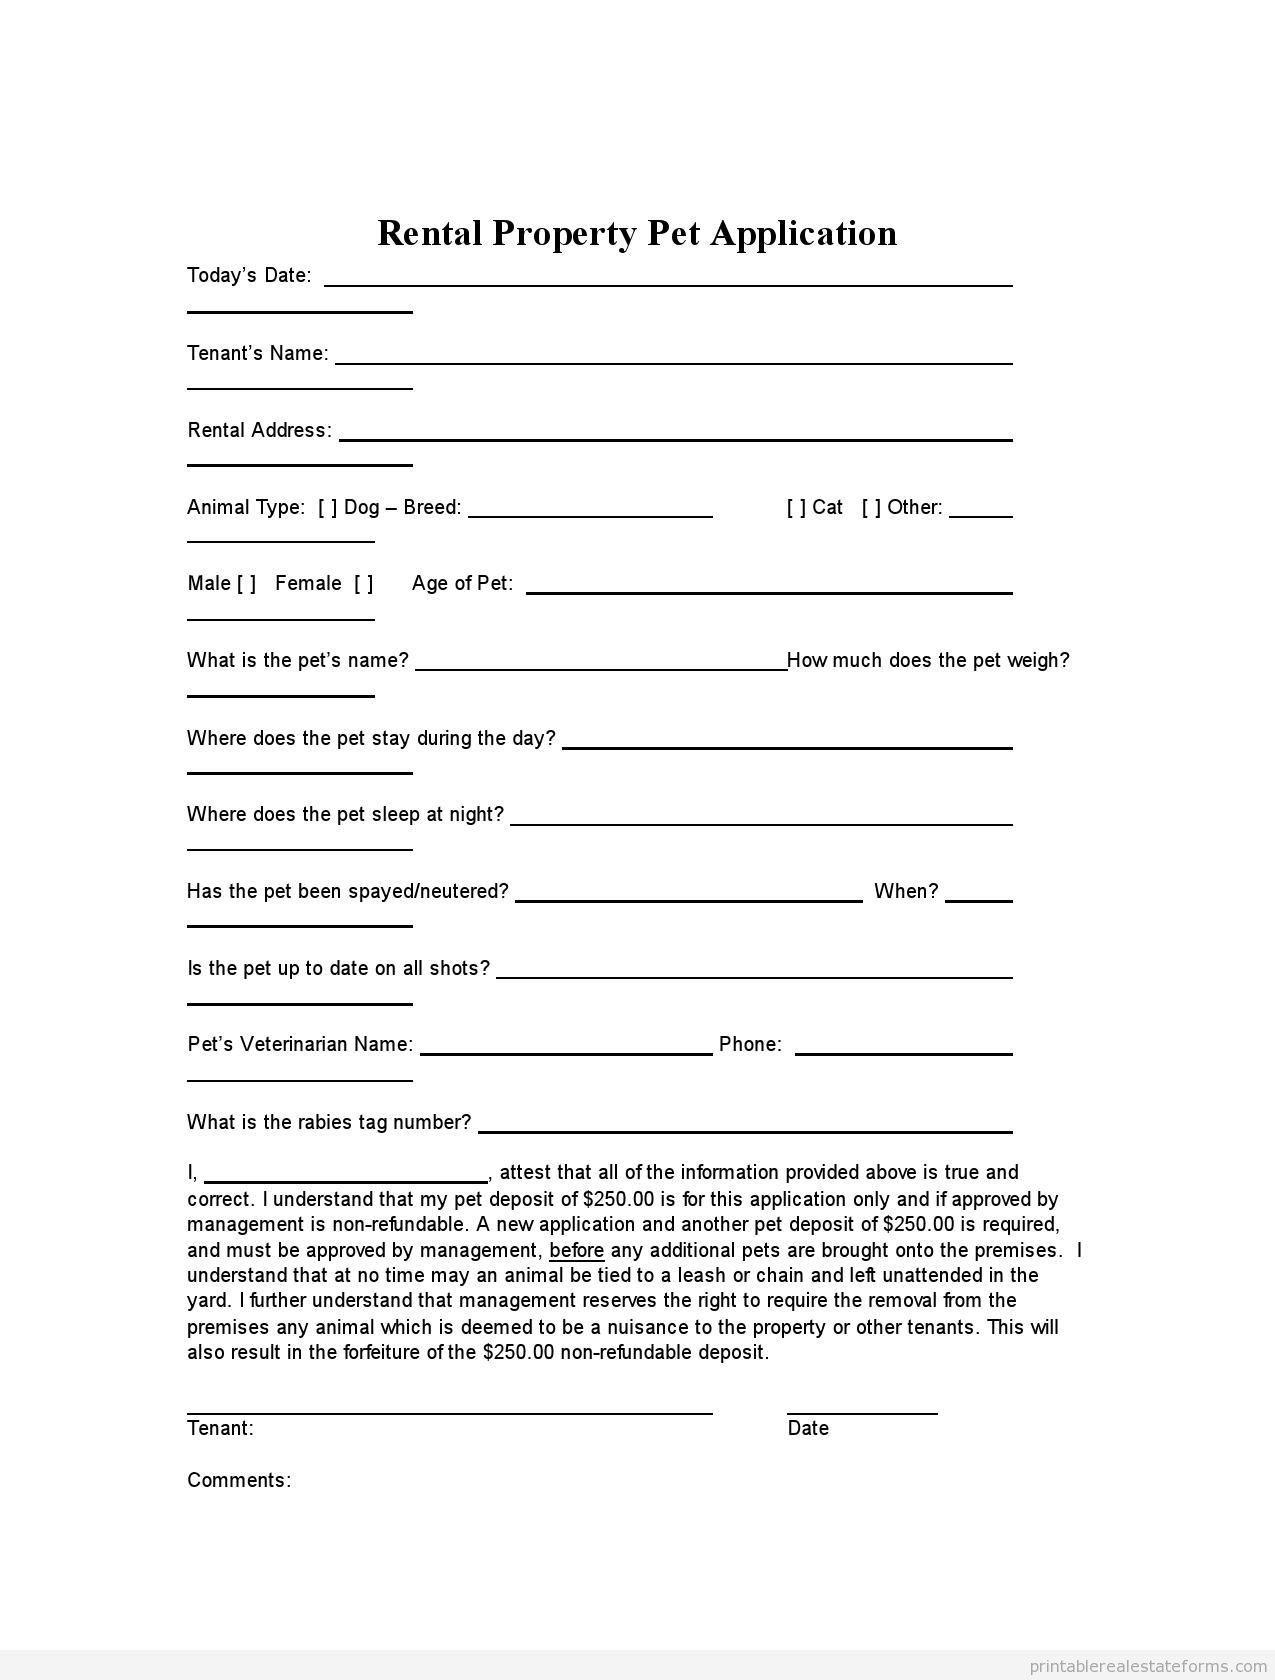 Contractor Application form Photos Of Printable Rental Property Pet Application Template 2015